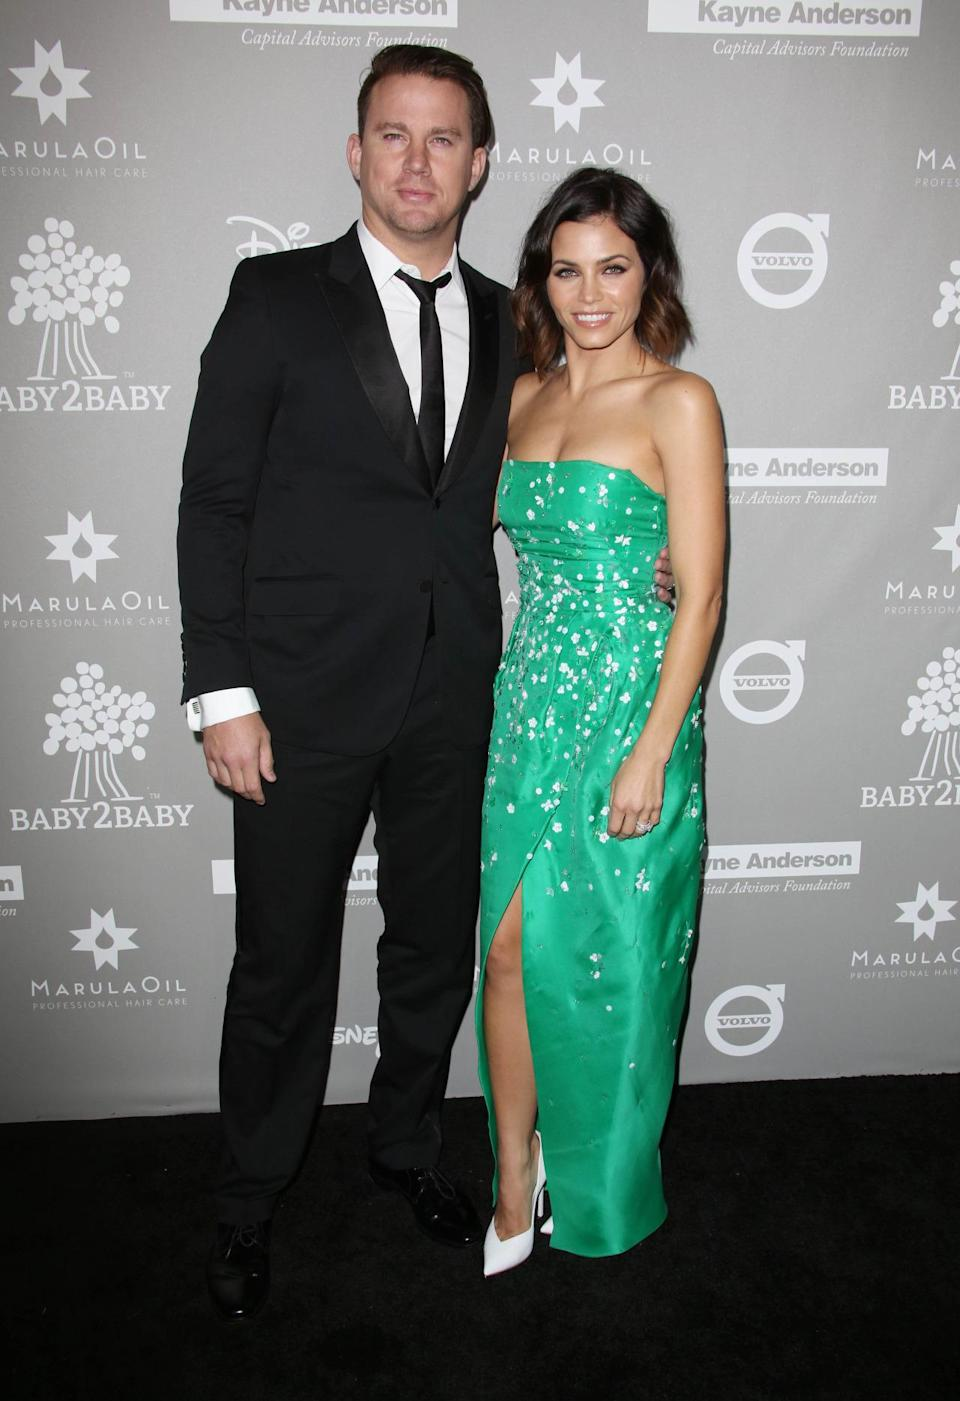 With her hubby Channing Tatum on her arm, Jenna Dewan Tatum walked the red carpet in an emerald green Monique Lhuillier dress. The actress, who's mum to daughter Everly, finished her look with white pumps and kept her lob loose. [Photo: Rex]